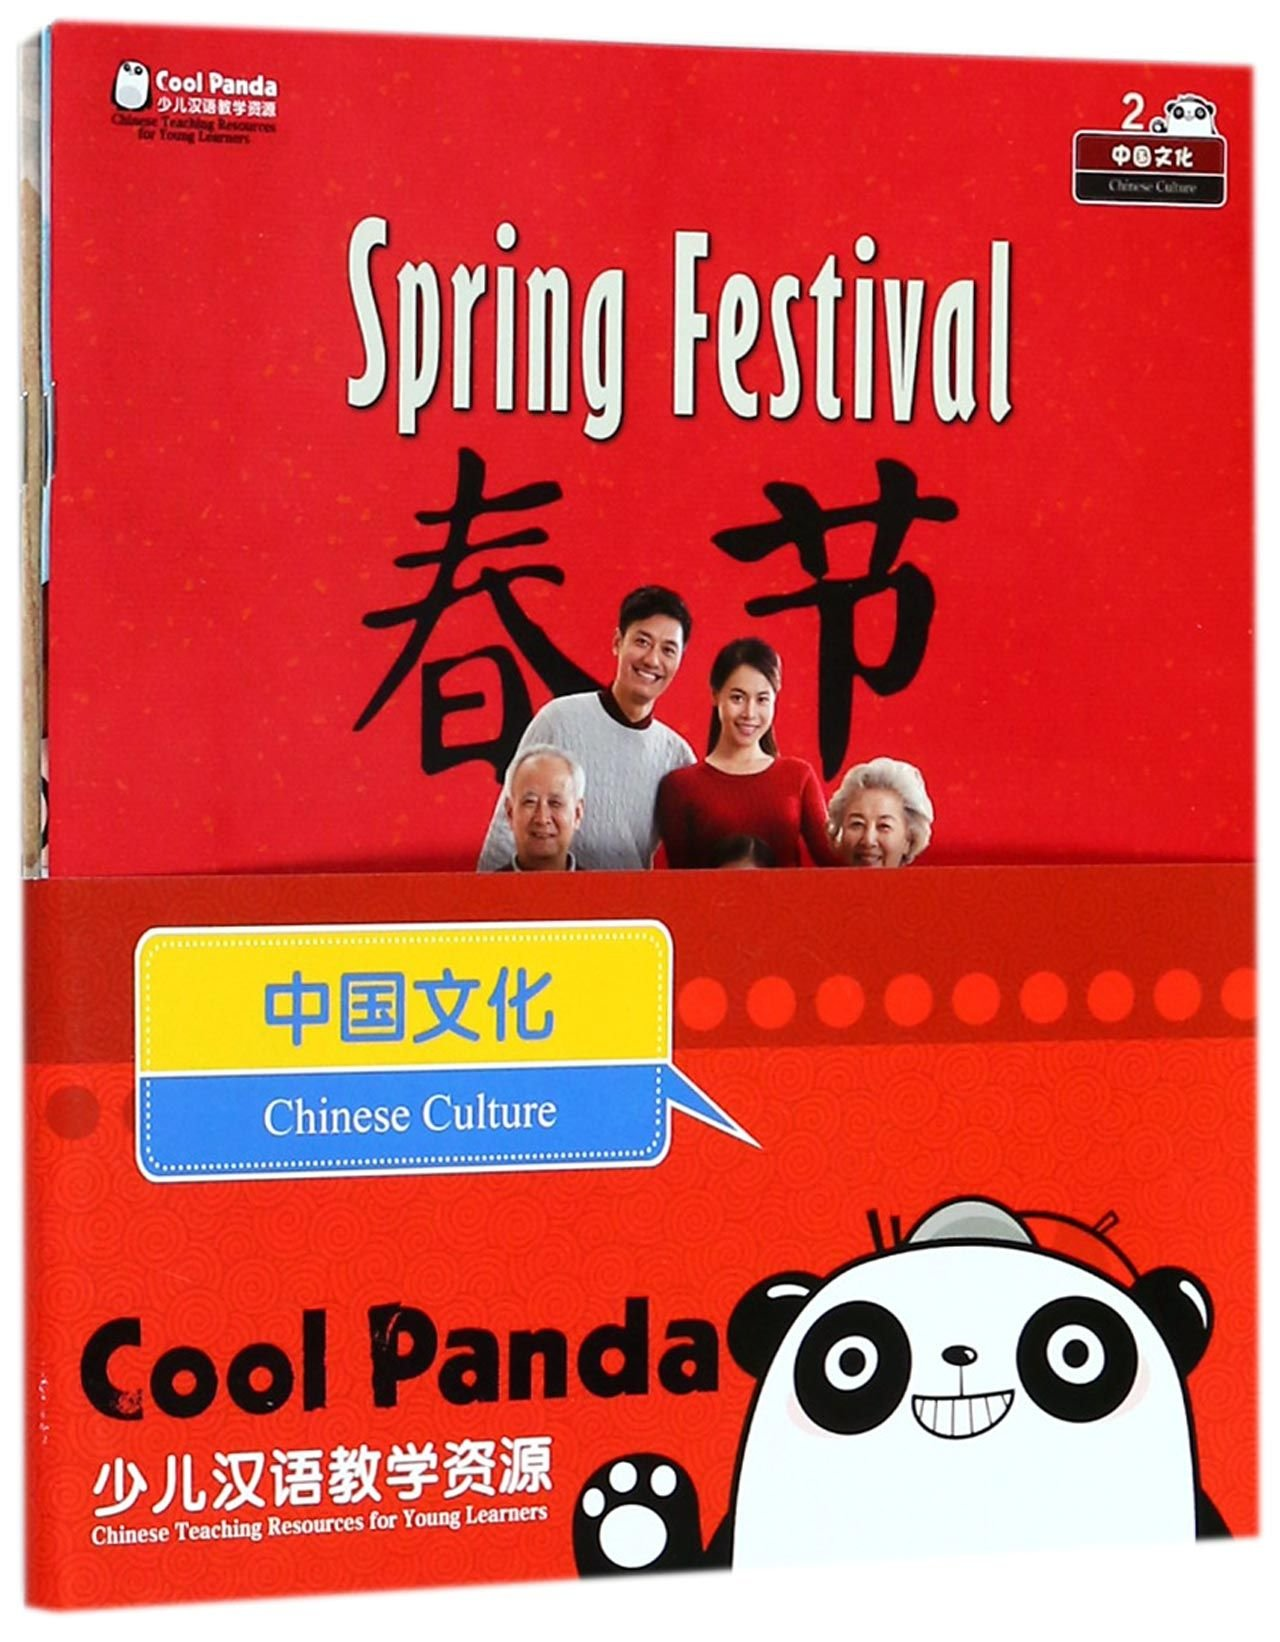 Chinese Culture - Cool Panda Chinese Teaching Resources for Young Learners Level 2